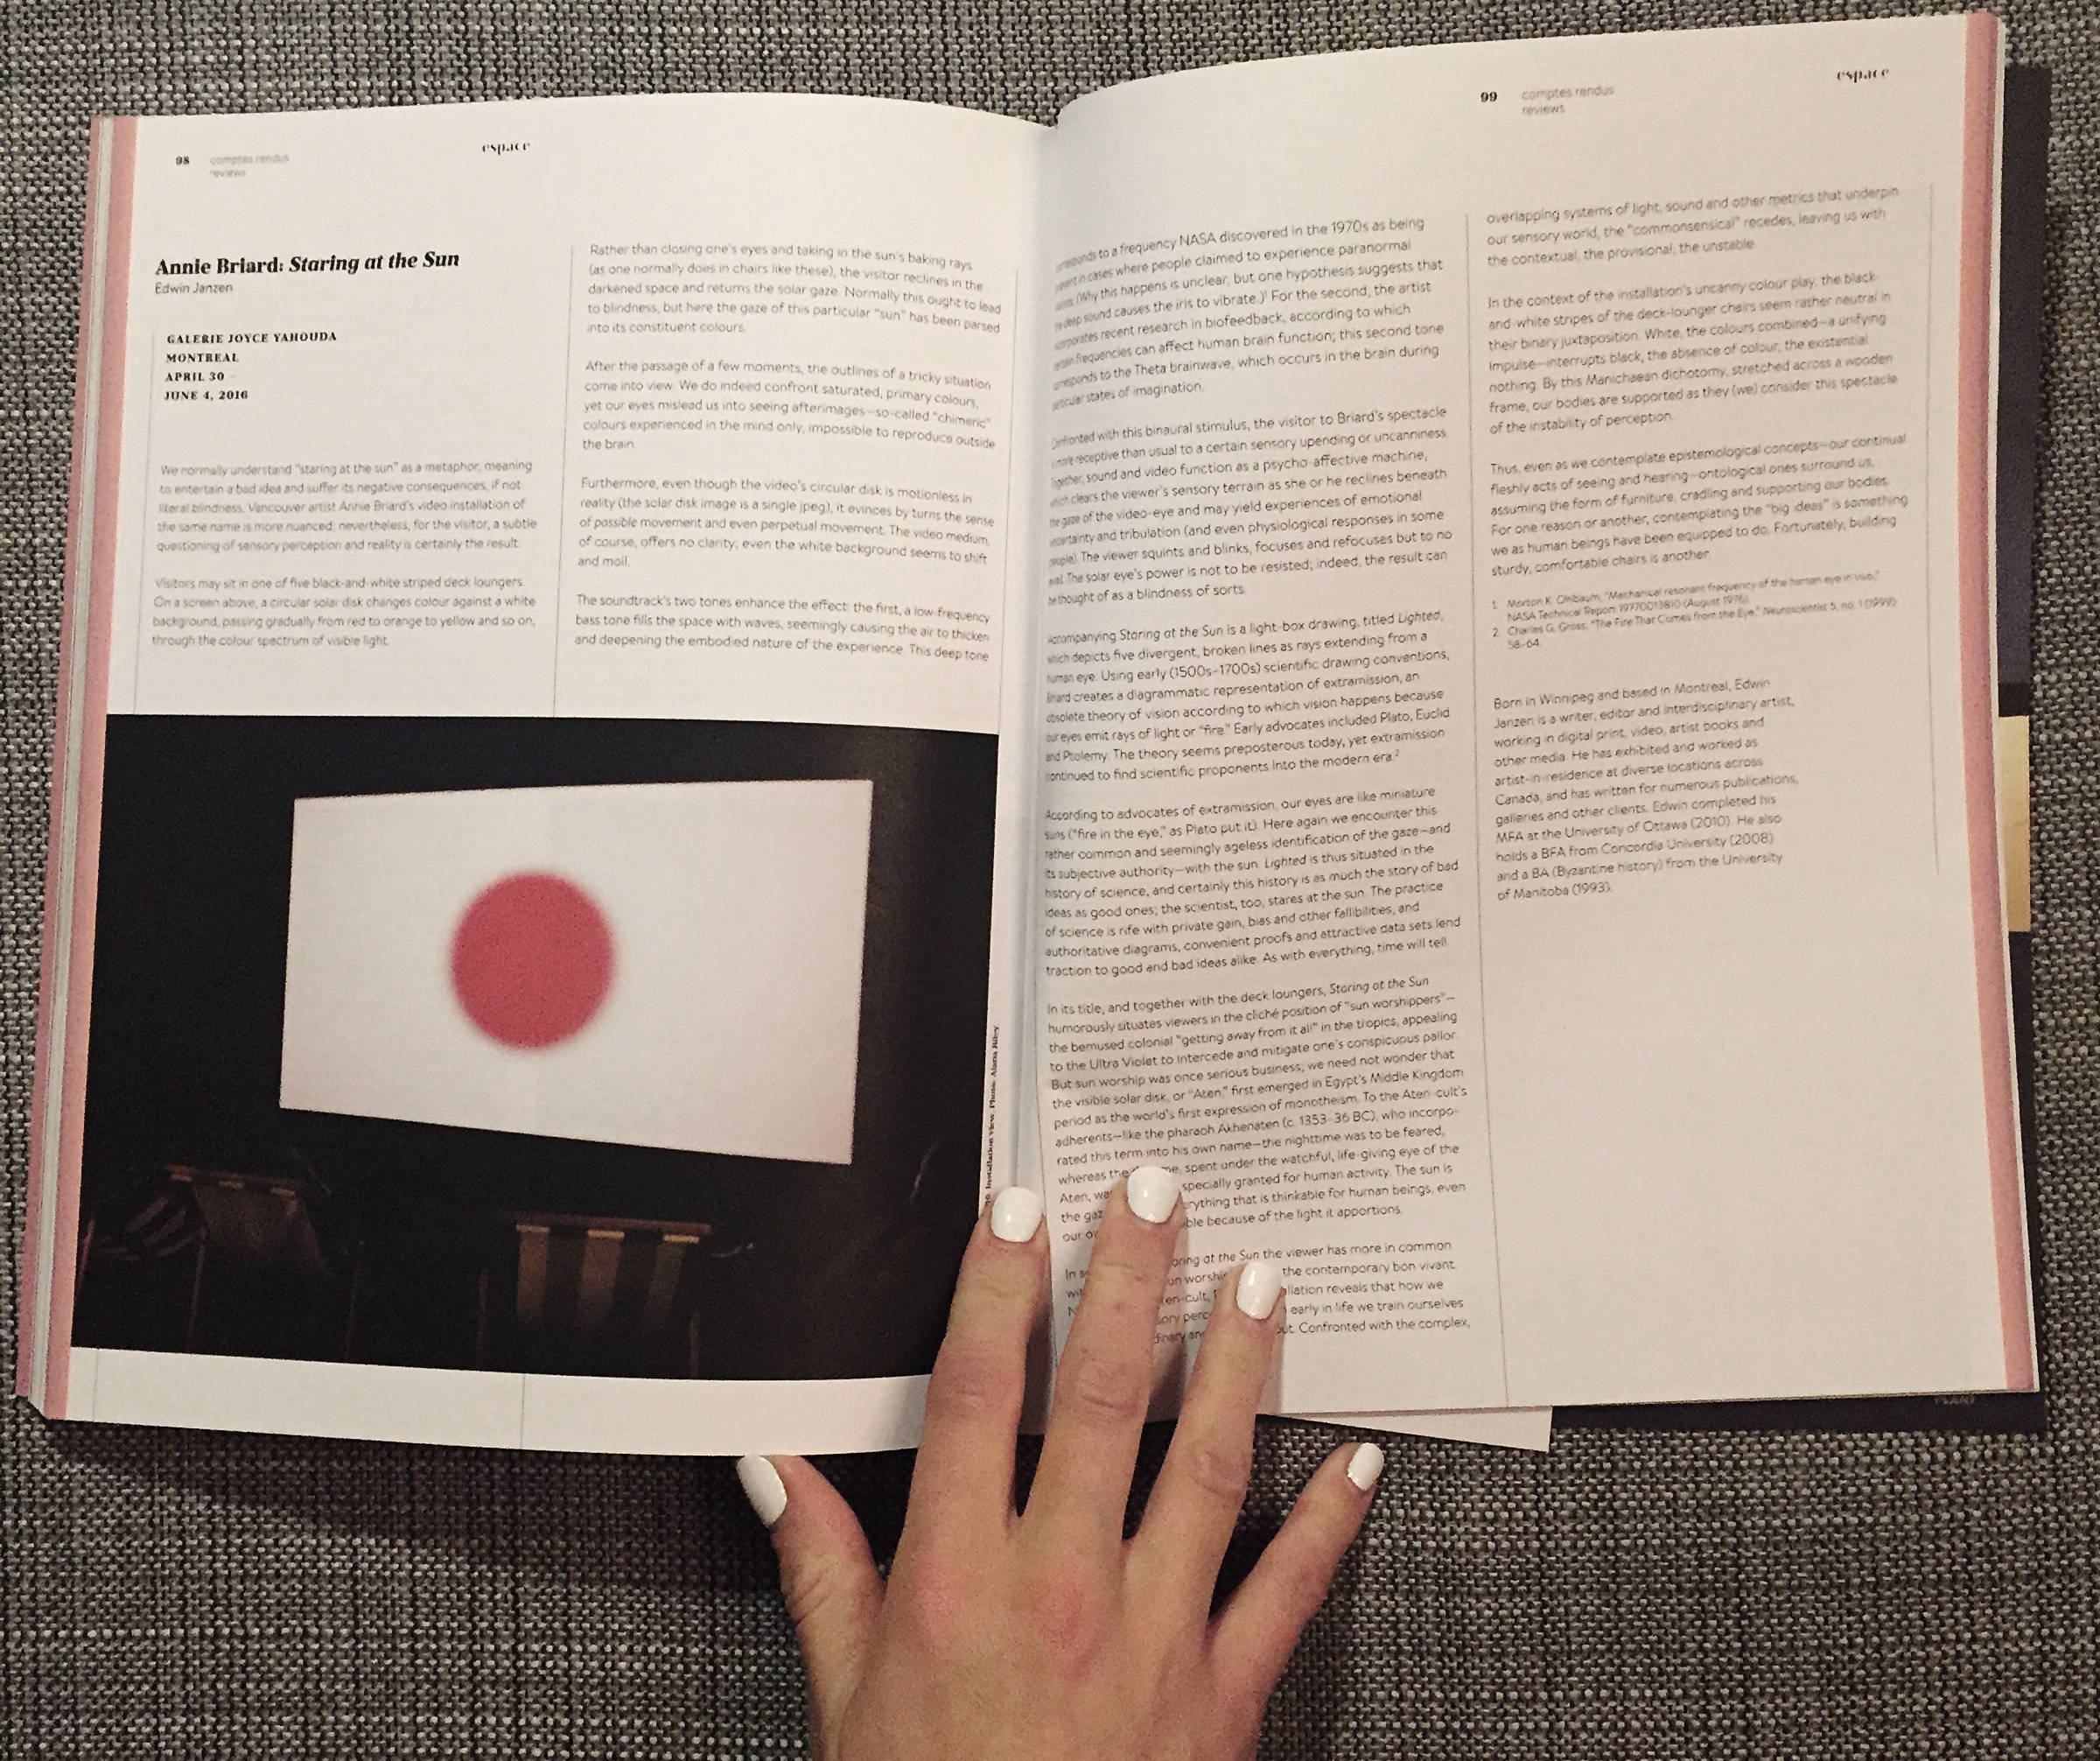 press - Espace art actuel magazine published an in-depth review by Edwin Janzen of my solo exhibition